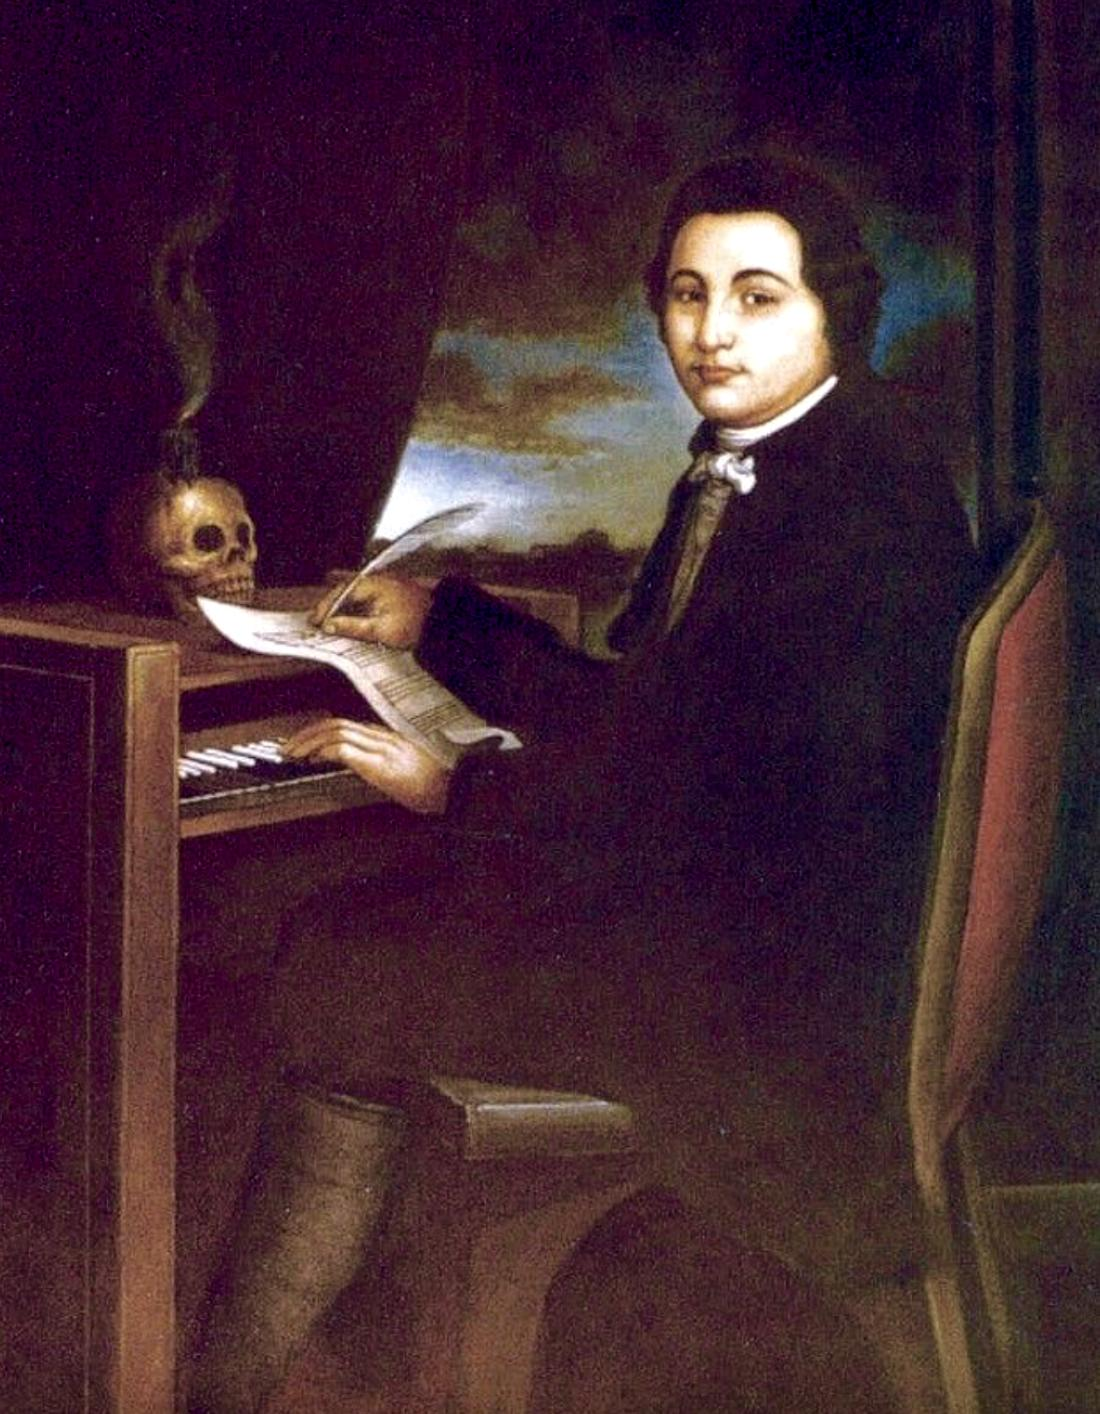 the unforgettable impact of johann sebastian bach on music Never has there been or likely ever will be a performing or composing talent such as johann sebastian bach who devoted nearly his entire professional musical life to service in the lutheran church.